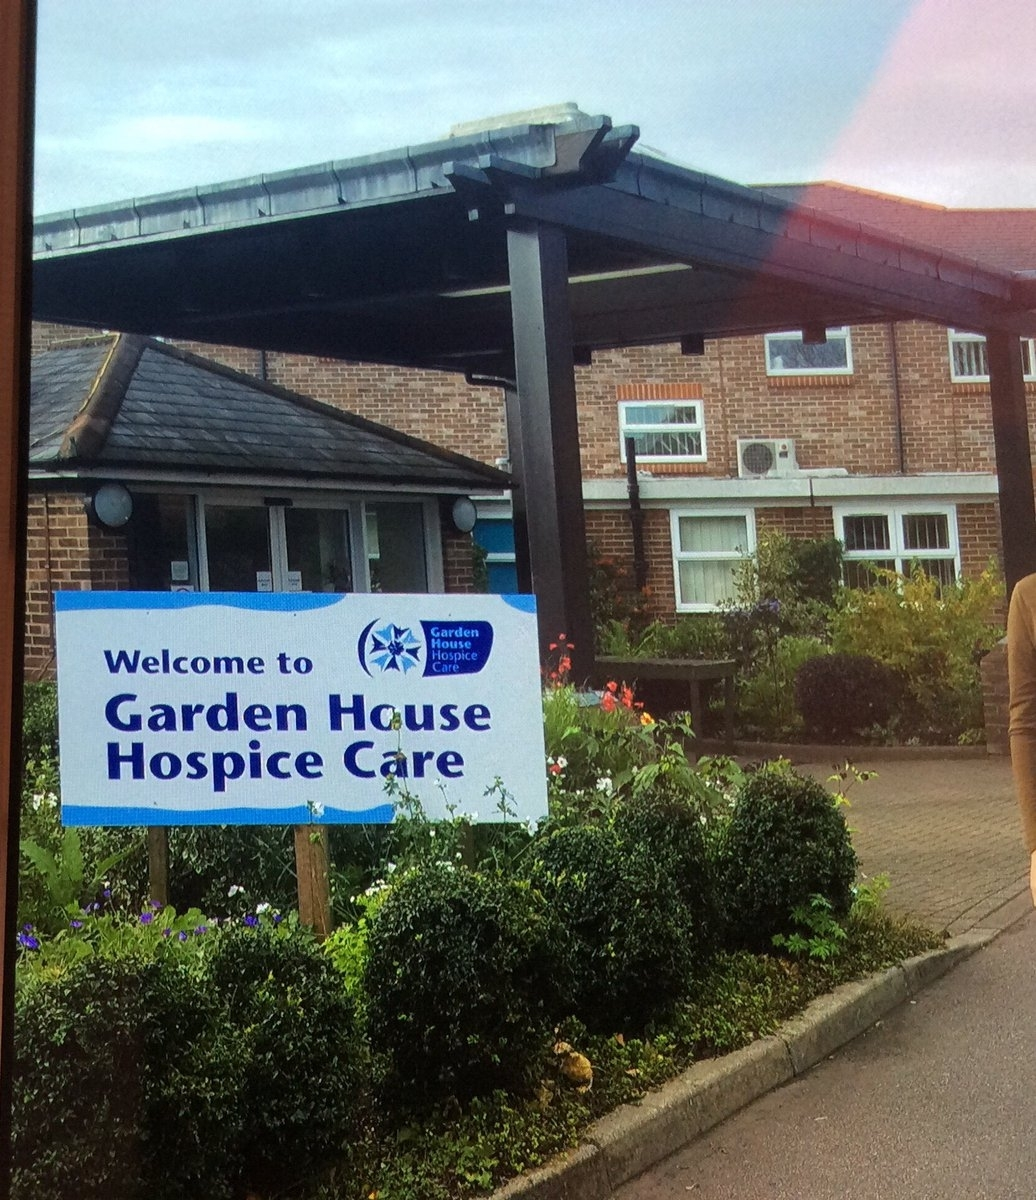 Garden House Hospice Letchworth New Garden Centre - Iraqstatusreport pertaining to Garden House Hospice In Letchworth